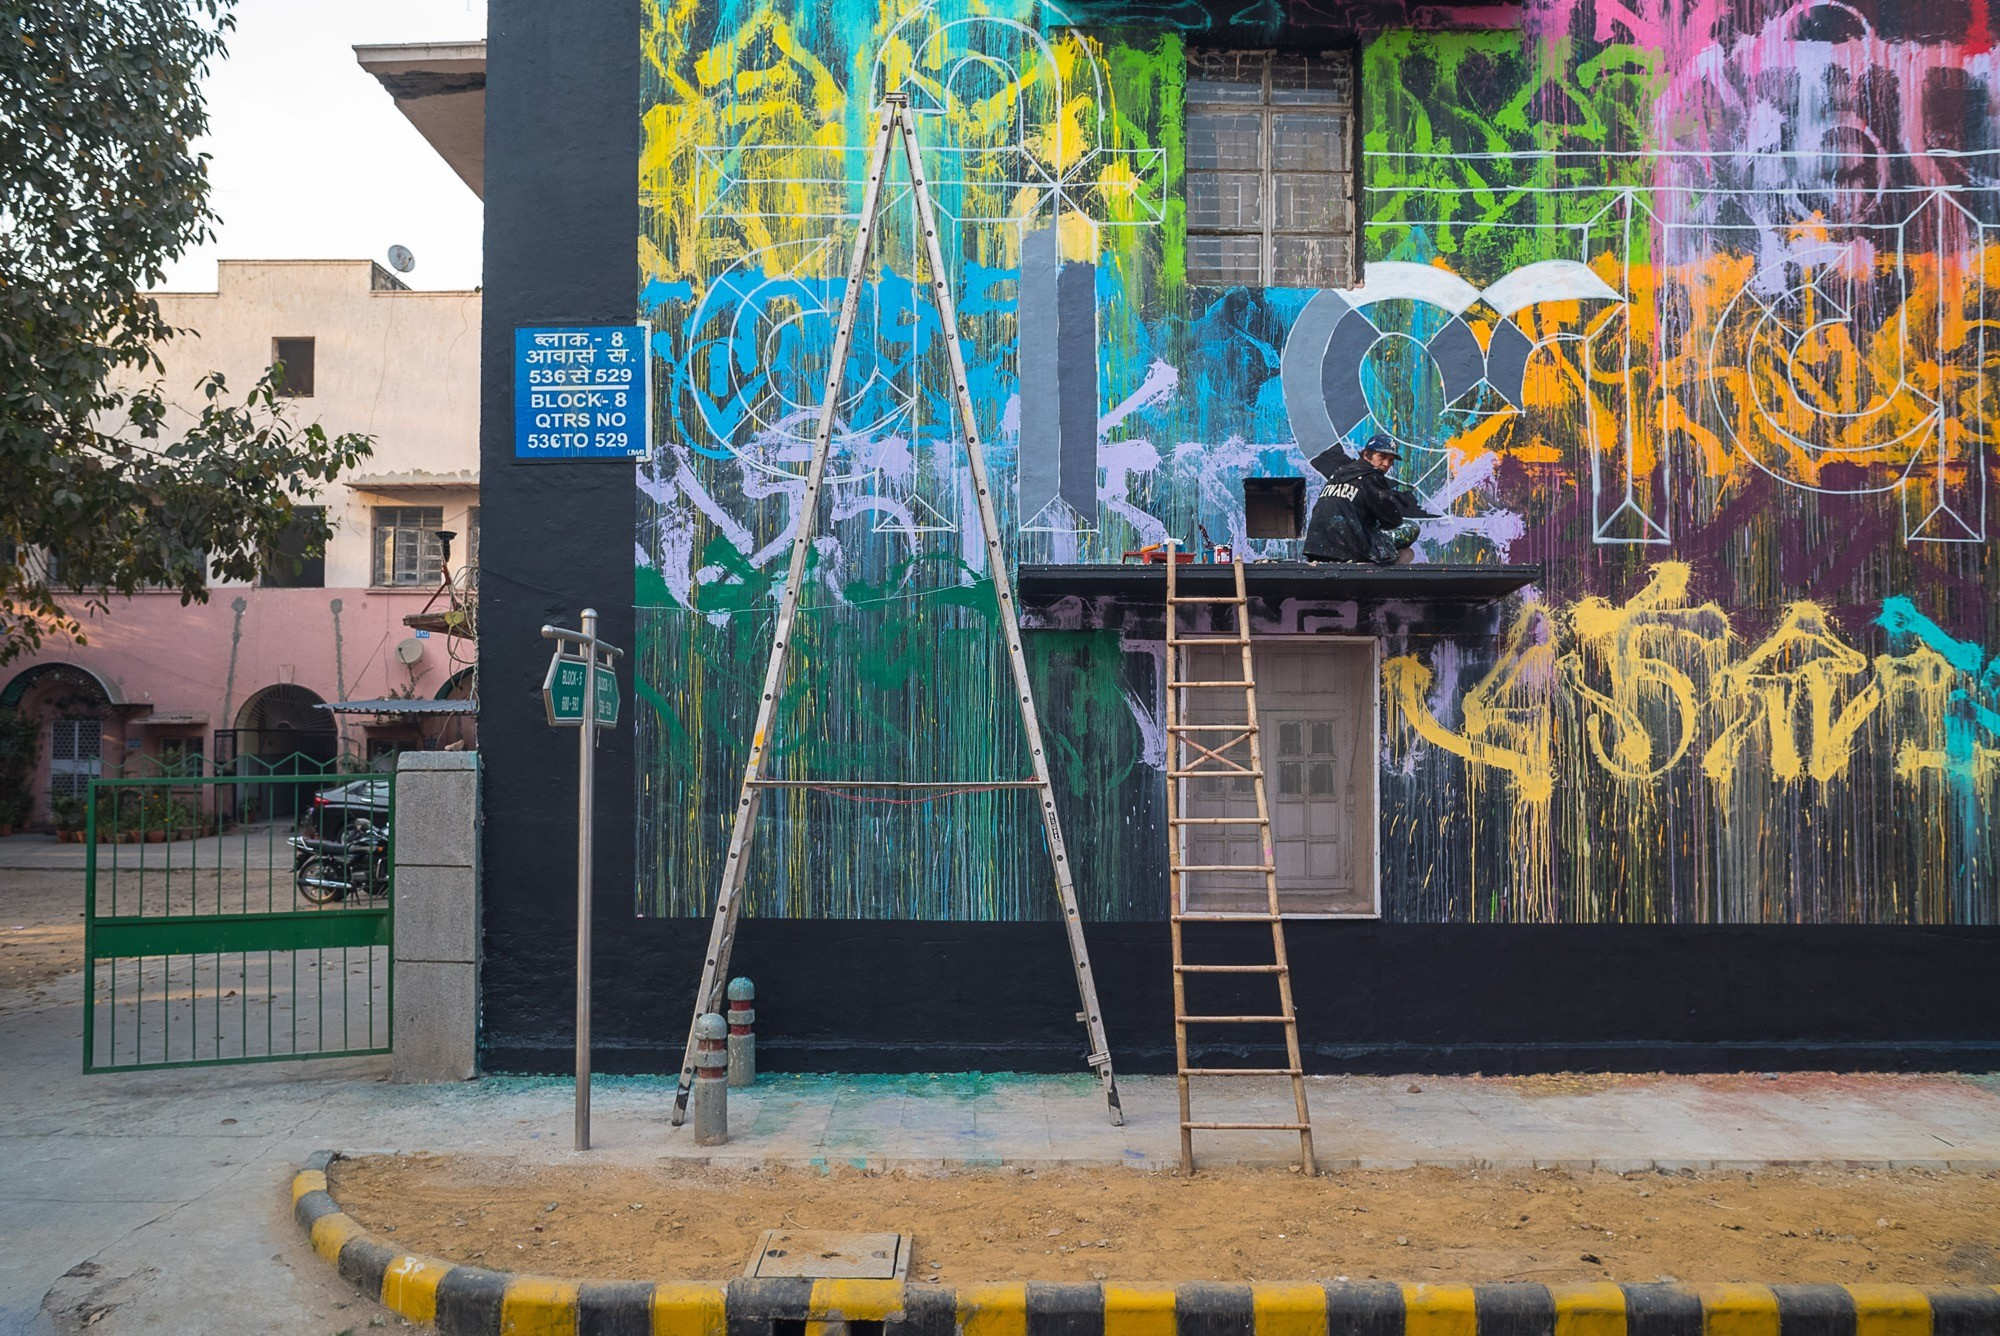 lekandsowat_lodhi art district_photo by naman saraiya (4 of 4)